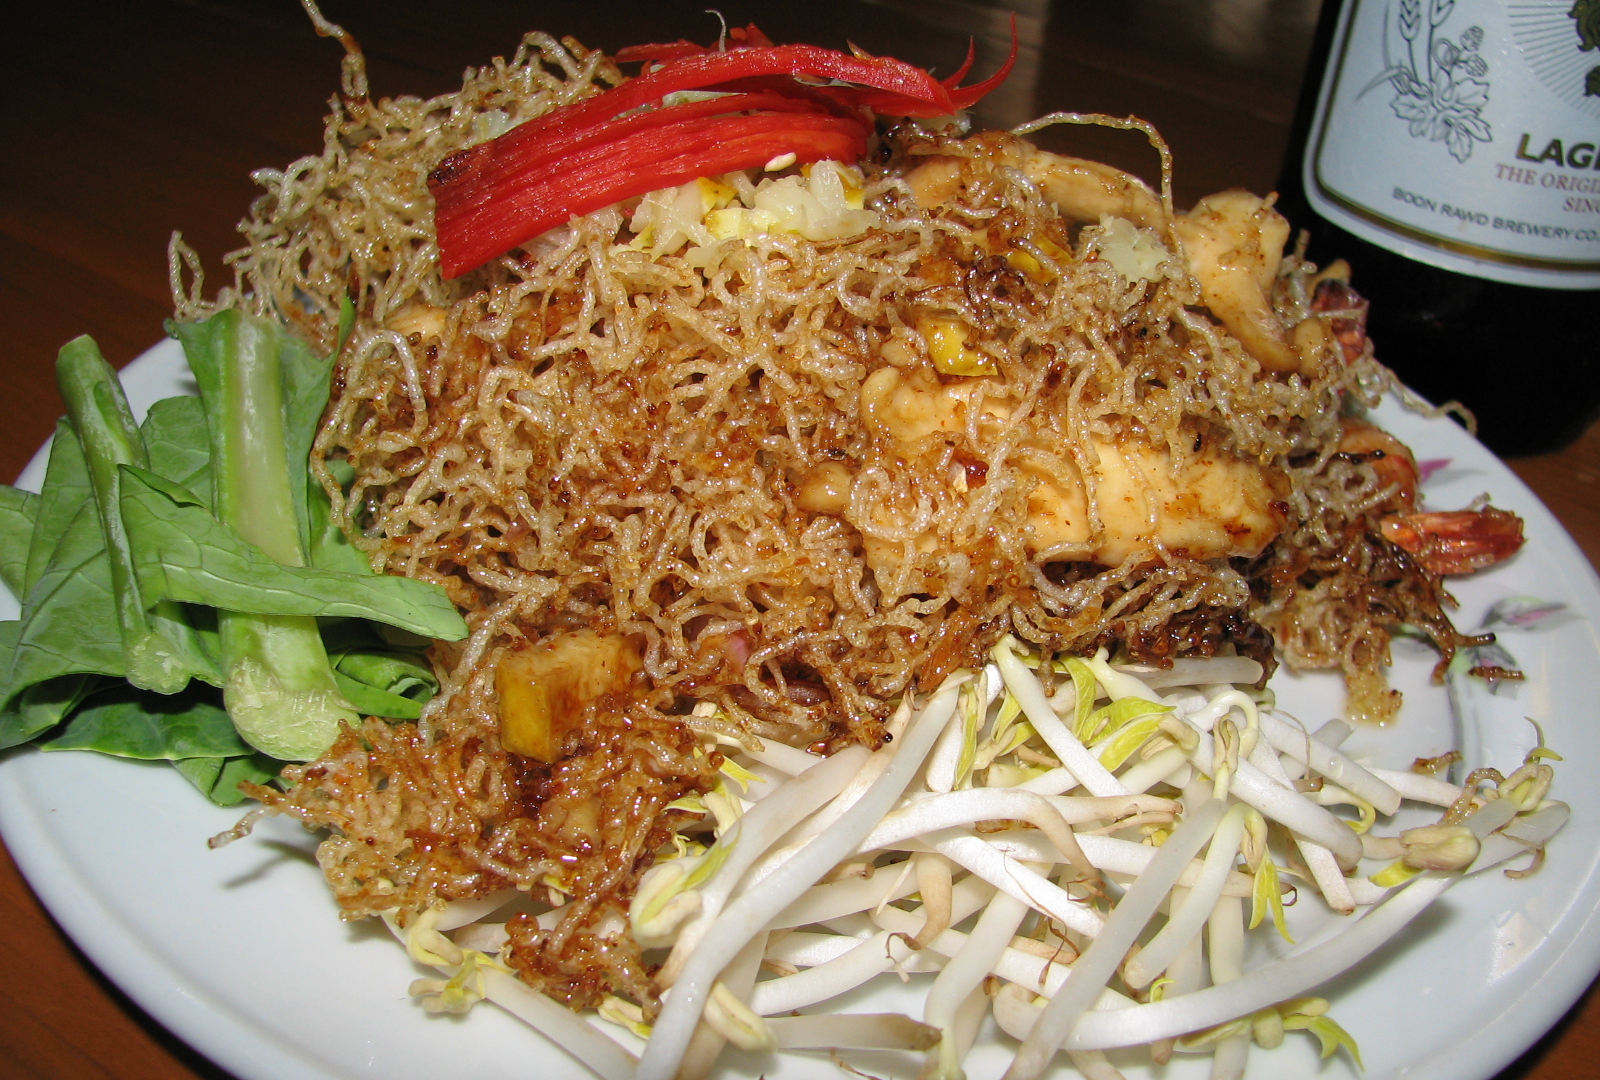 Fried noodles with sweet sauce